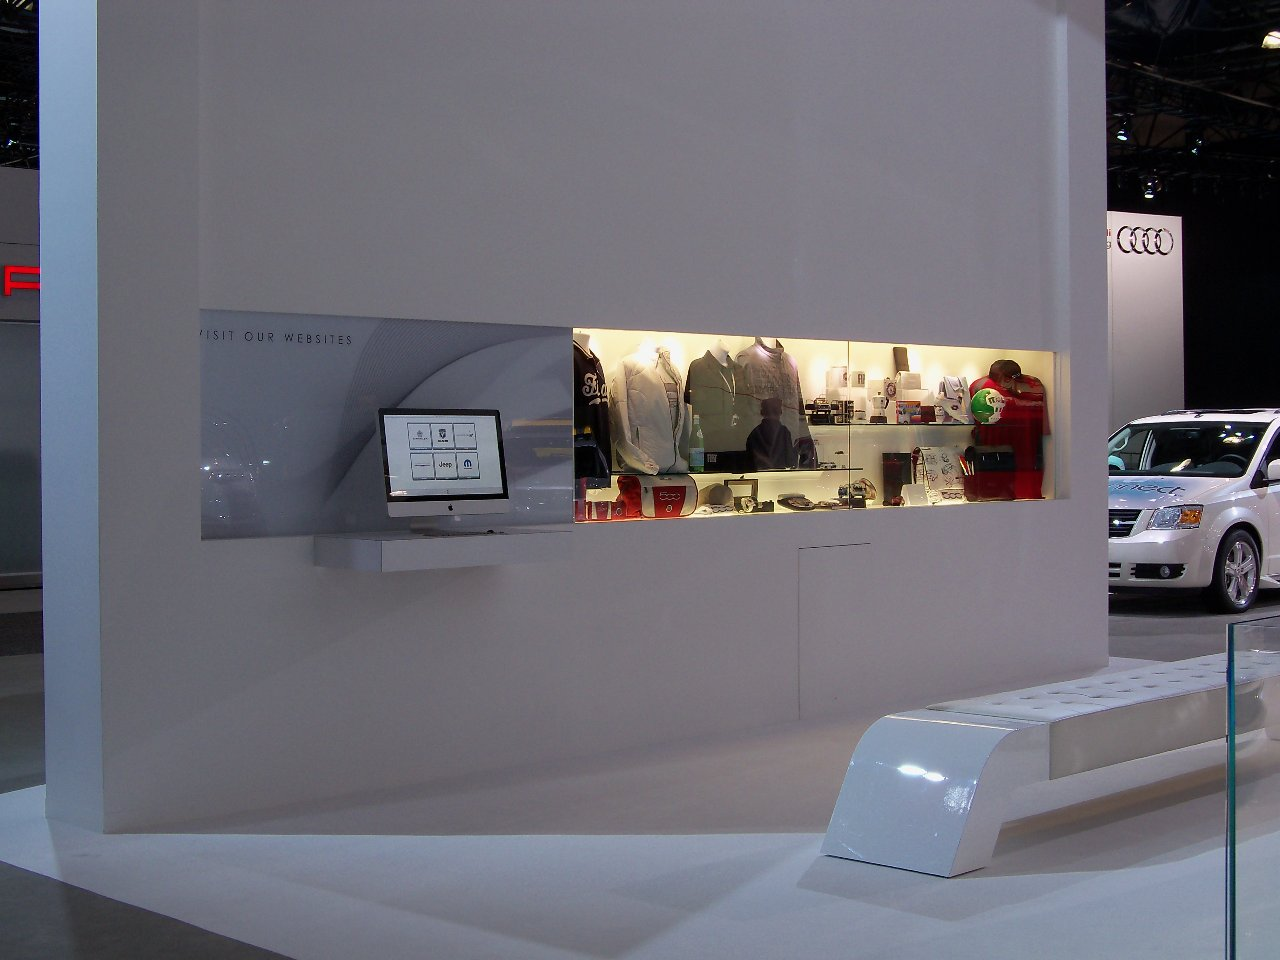 Fiat Accessories On Display At The New York Auto Show Fiat USA - Car show display accessories